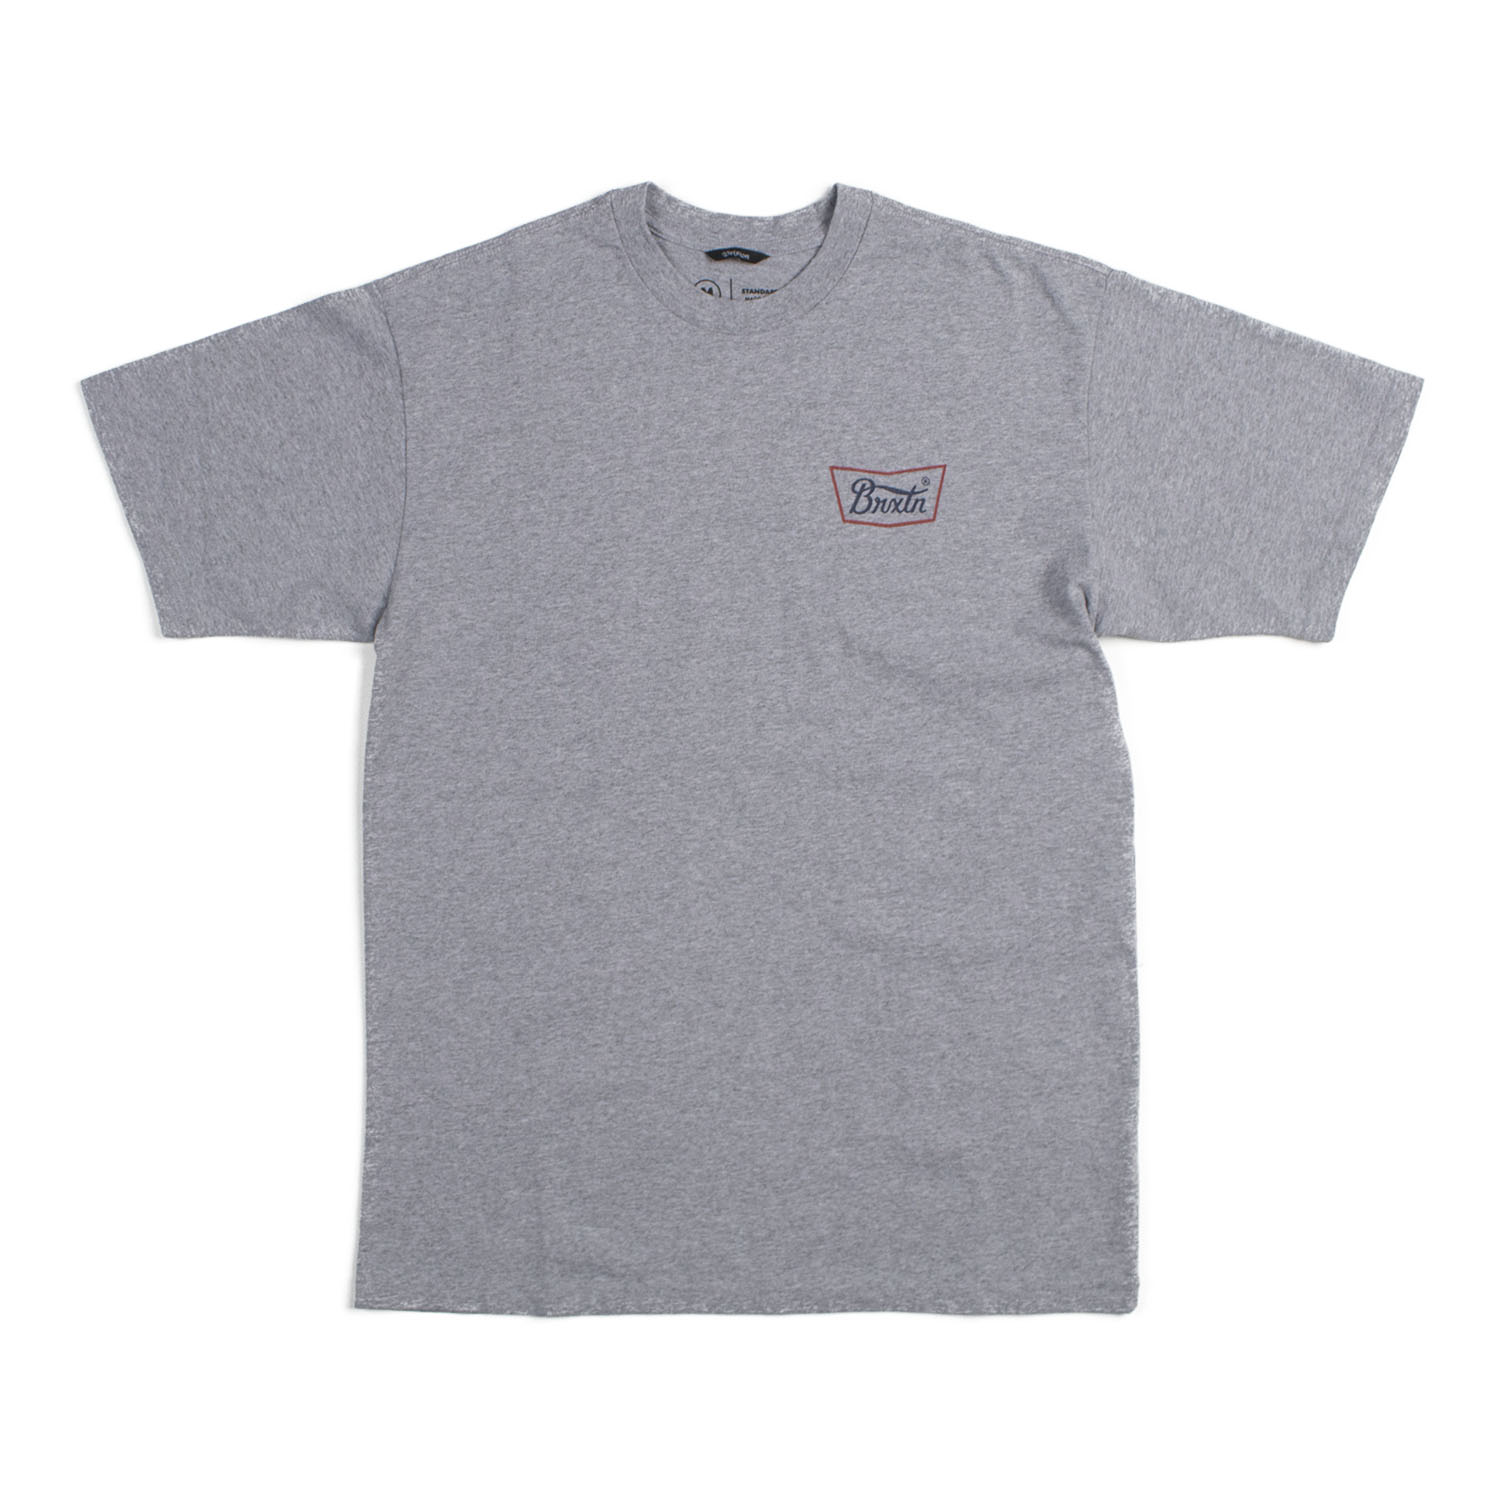 Brixton Stith S/S STND Tee (Heather Grey / Red / Blue)